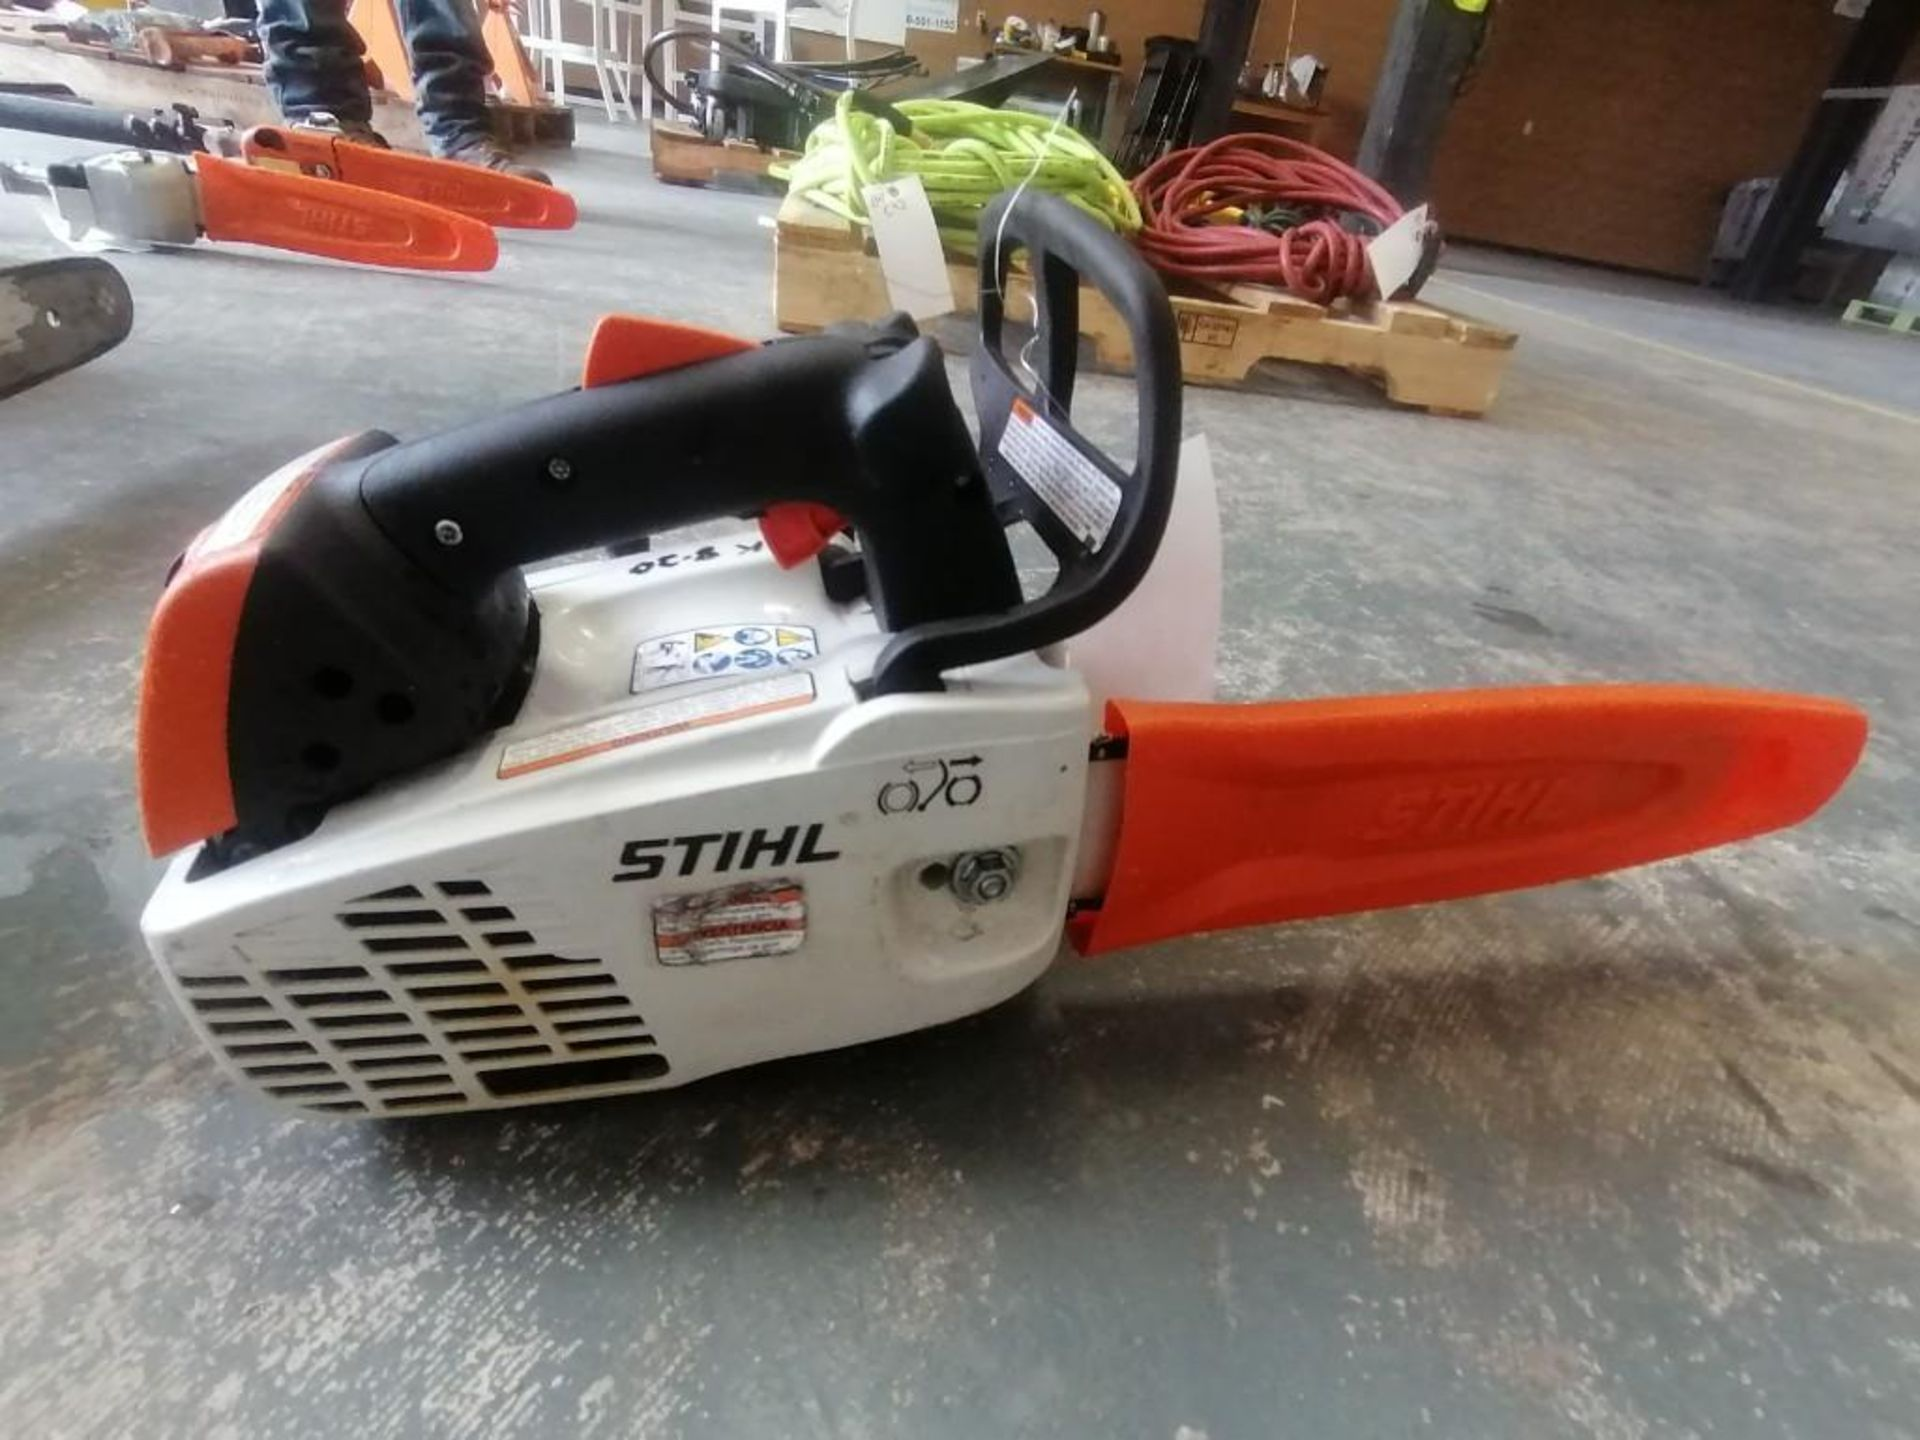 Lot 20 - (1) Stihl MS194T Chainsaw. Located at 301 E Henry Street, Mt. Pleasant, IA 52641.